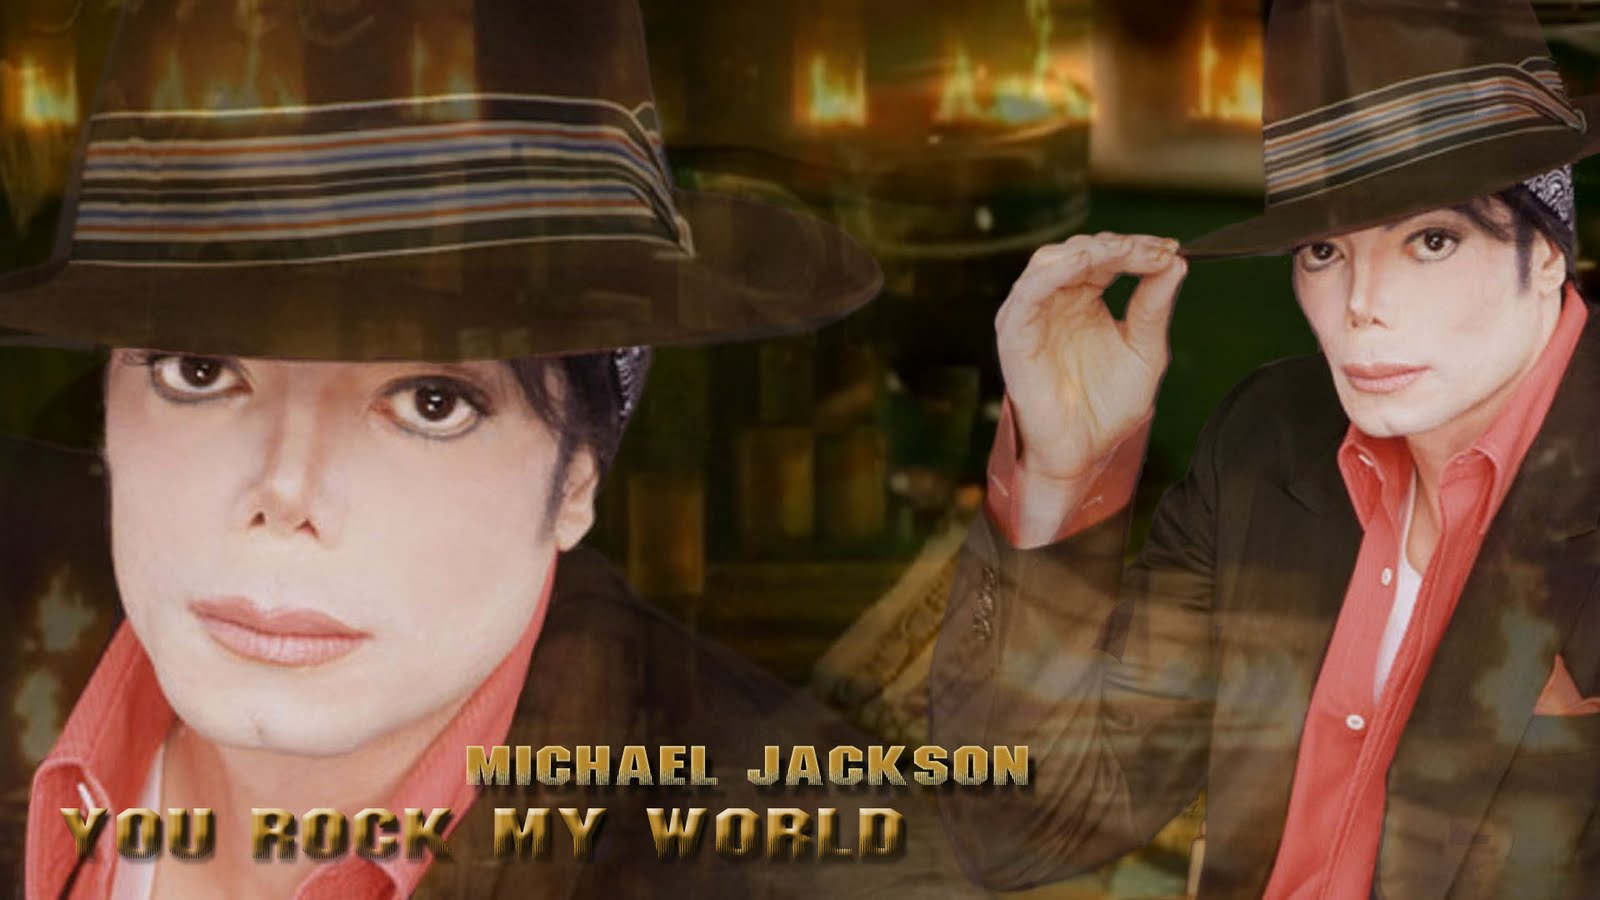 http://3.bp.blogspot.com/-MNM-lPukRHI/TjM7dacDF7I/AAAAAAAAASo/vop1Zg00fLU/s1600/Michael-Jackson-You-Rock-My-World-michael-jackson-10982058-1920-1080.jpg